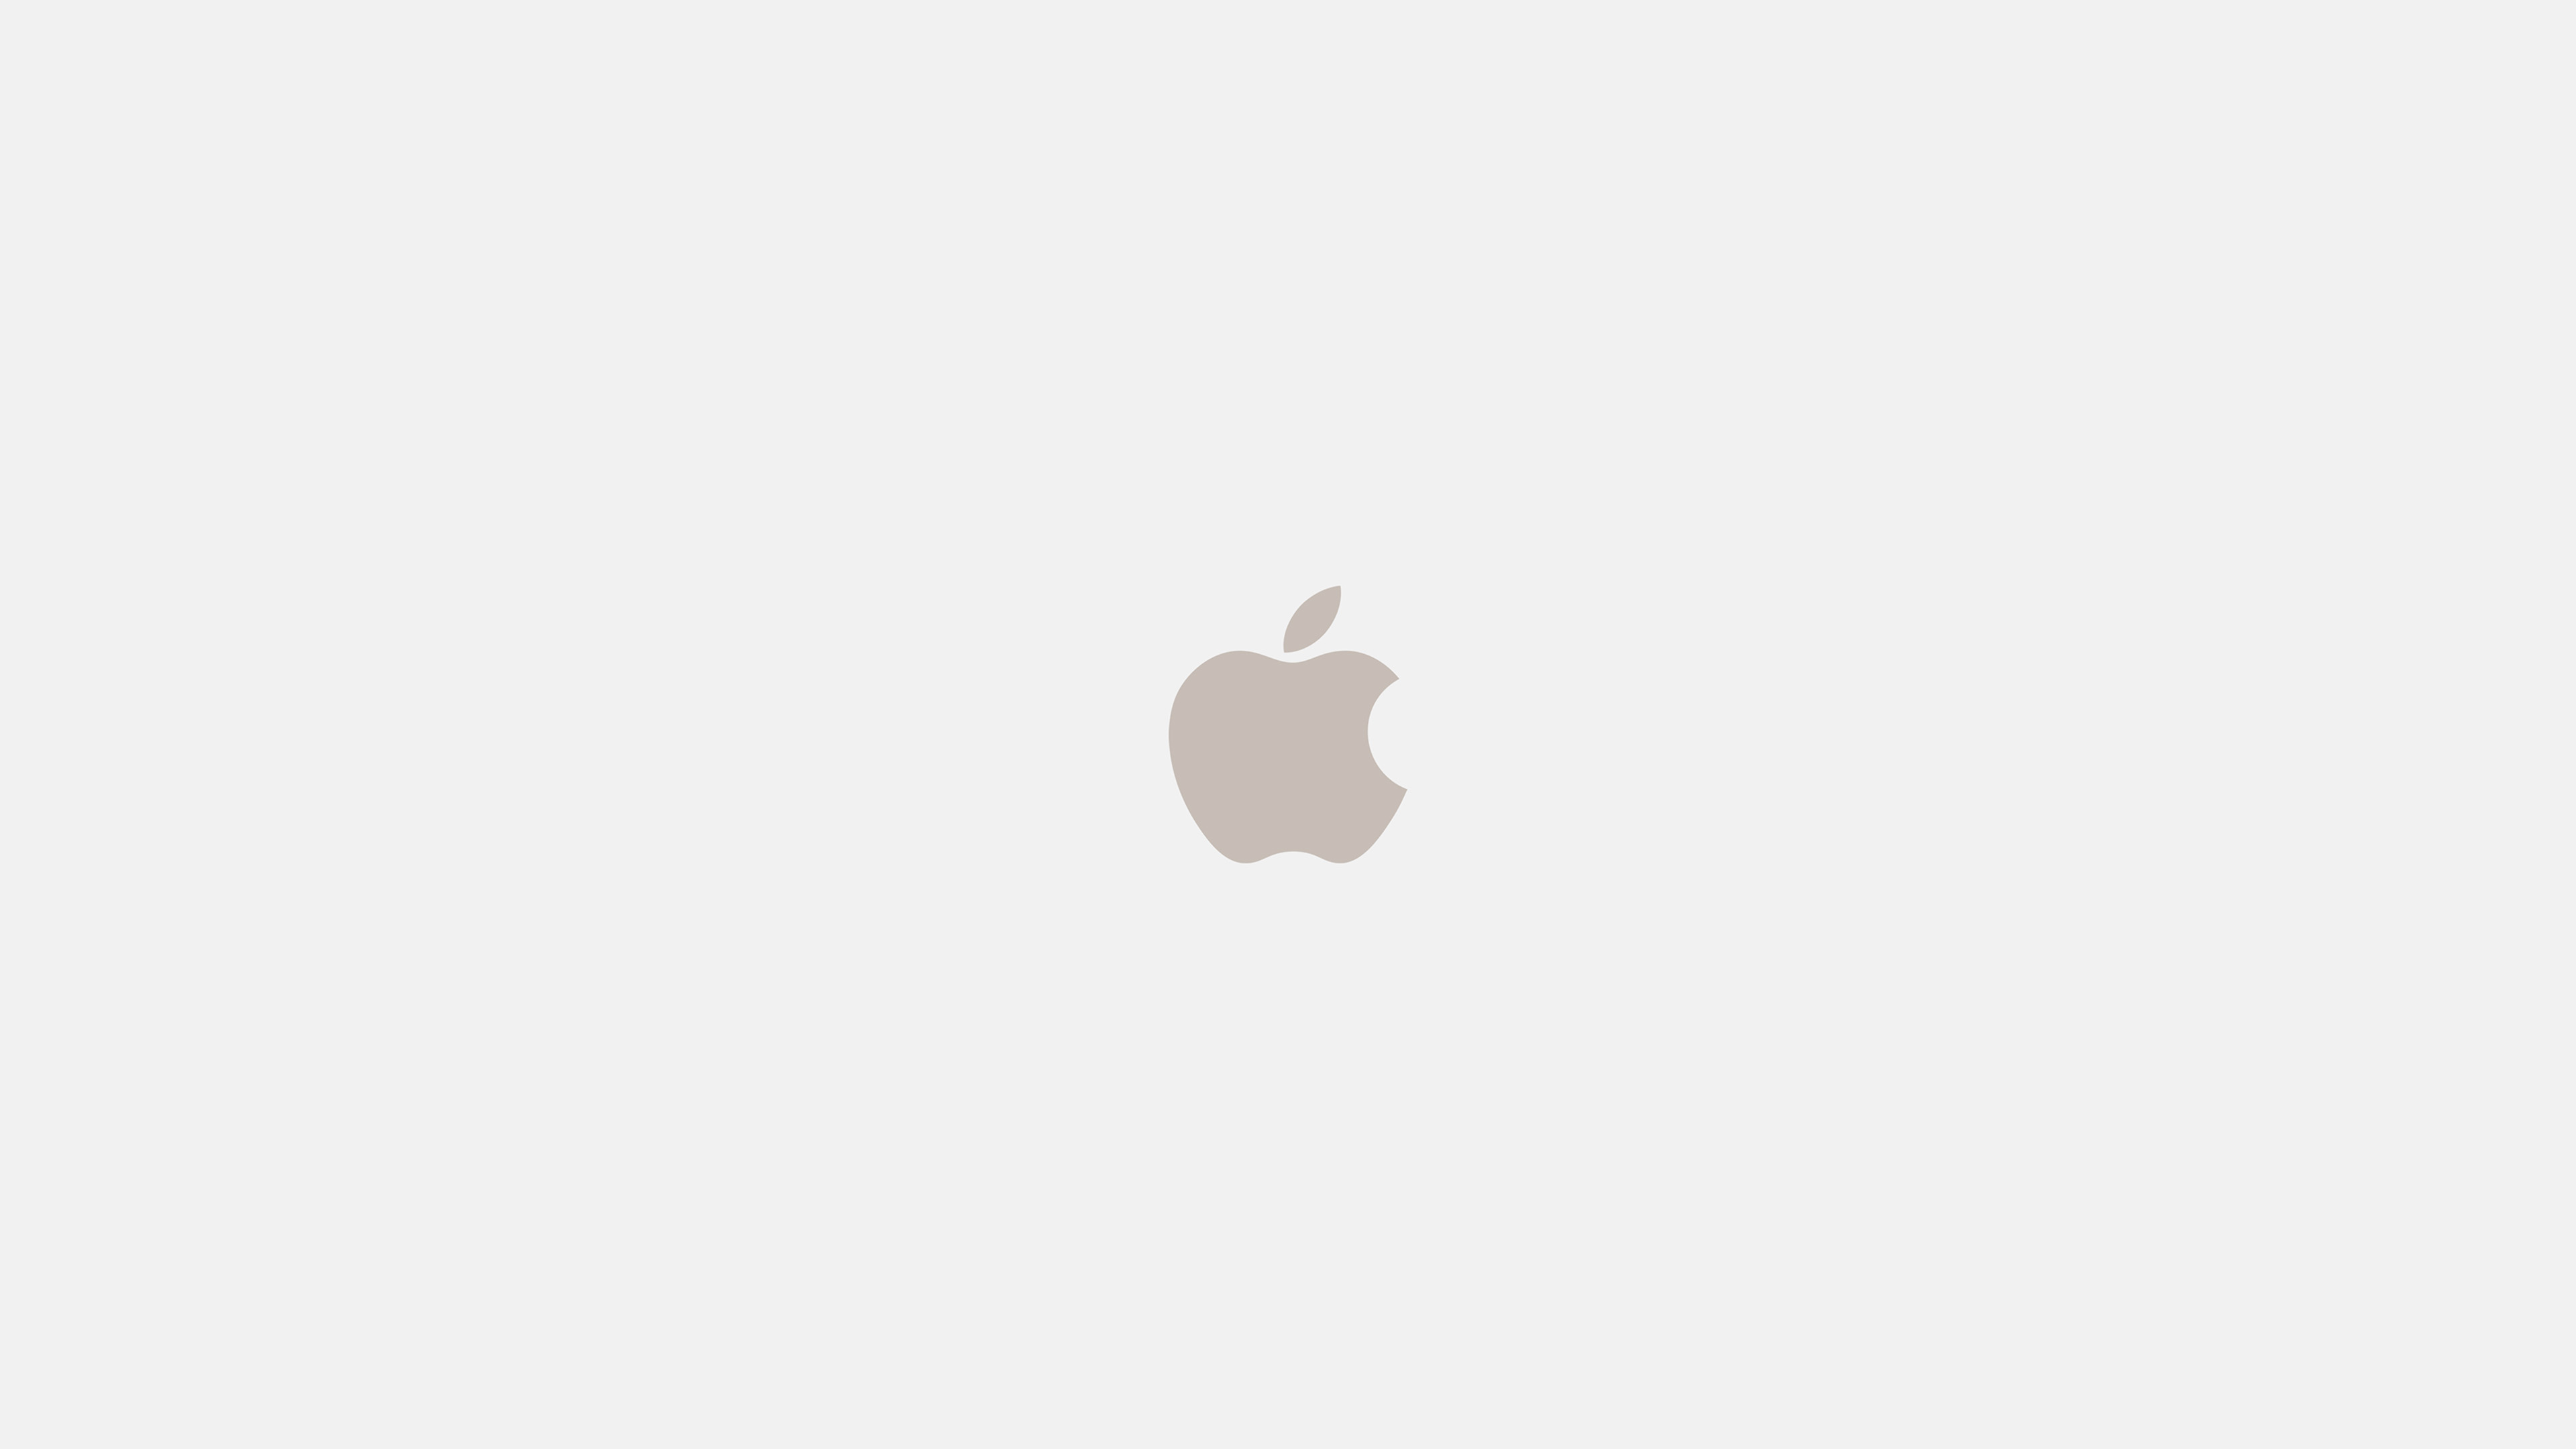 Minimalist Fall Wallpapers As69 Iphone7 Apple Logo White Gold Art Illustration Wallpaper